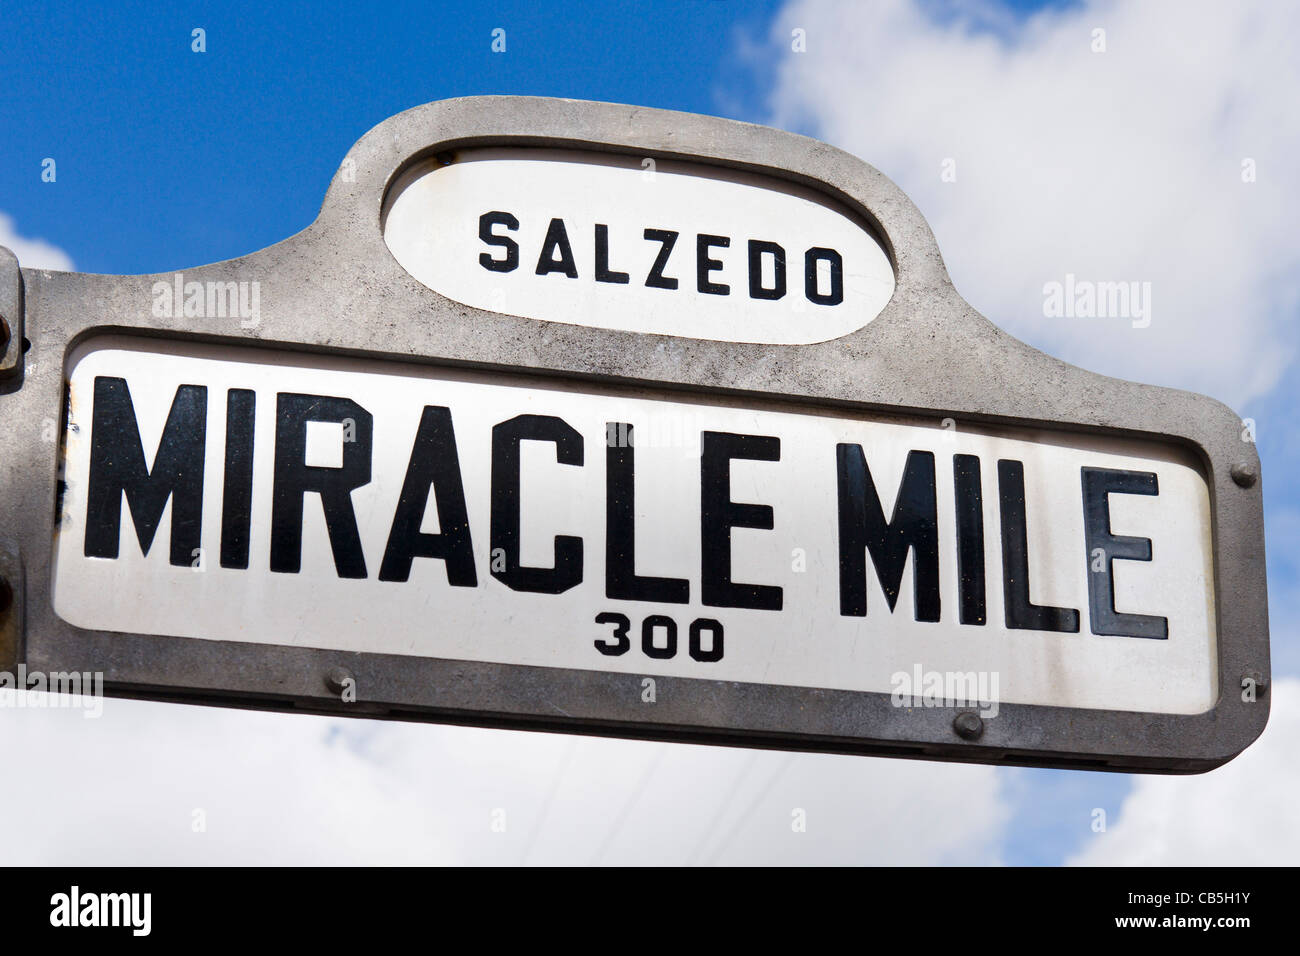 Street sign for the Miracle Mile (Coral Way), Coral Gables, Miami, Florida, USA Stock Photo